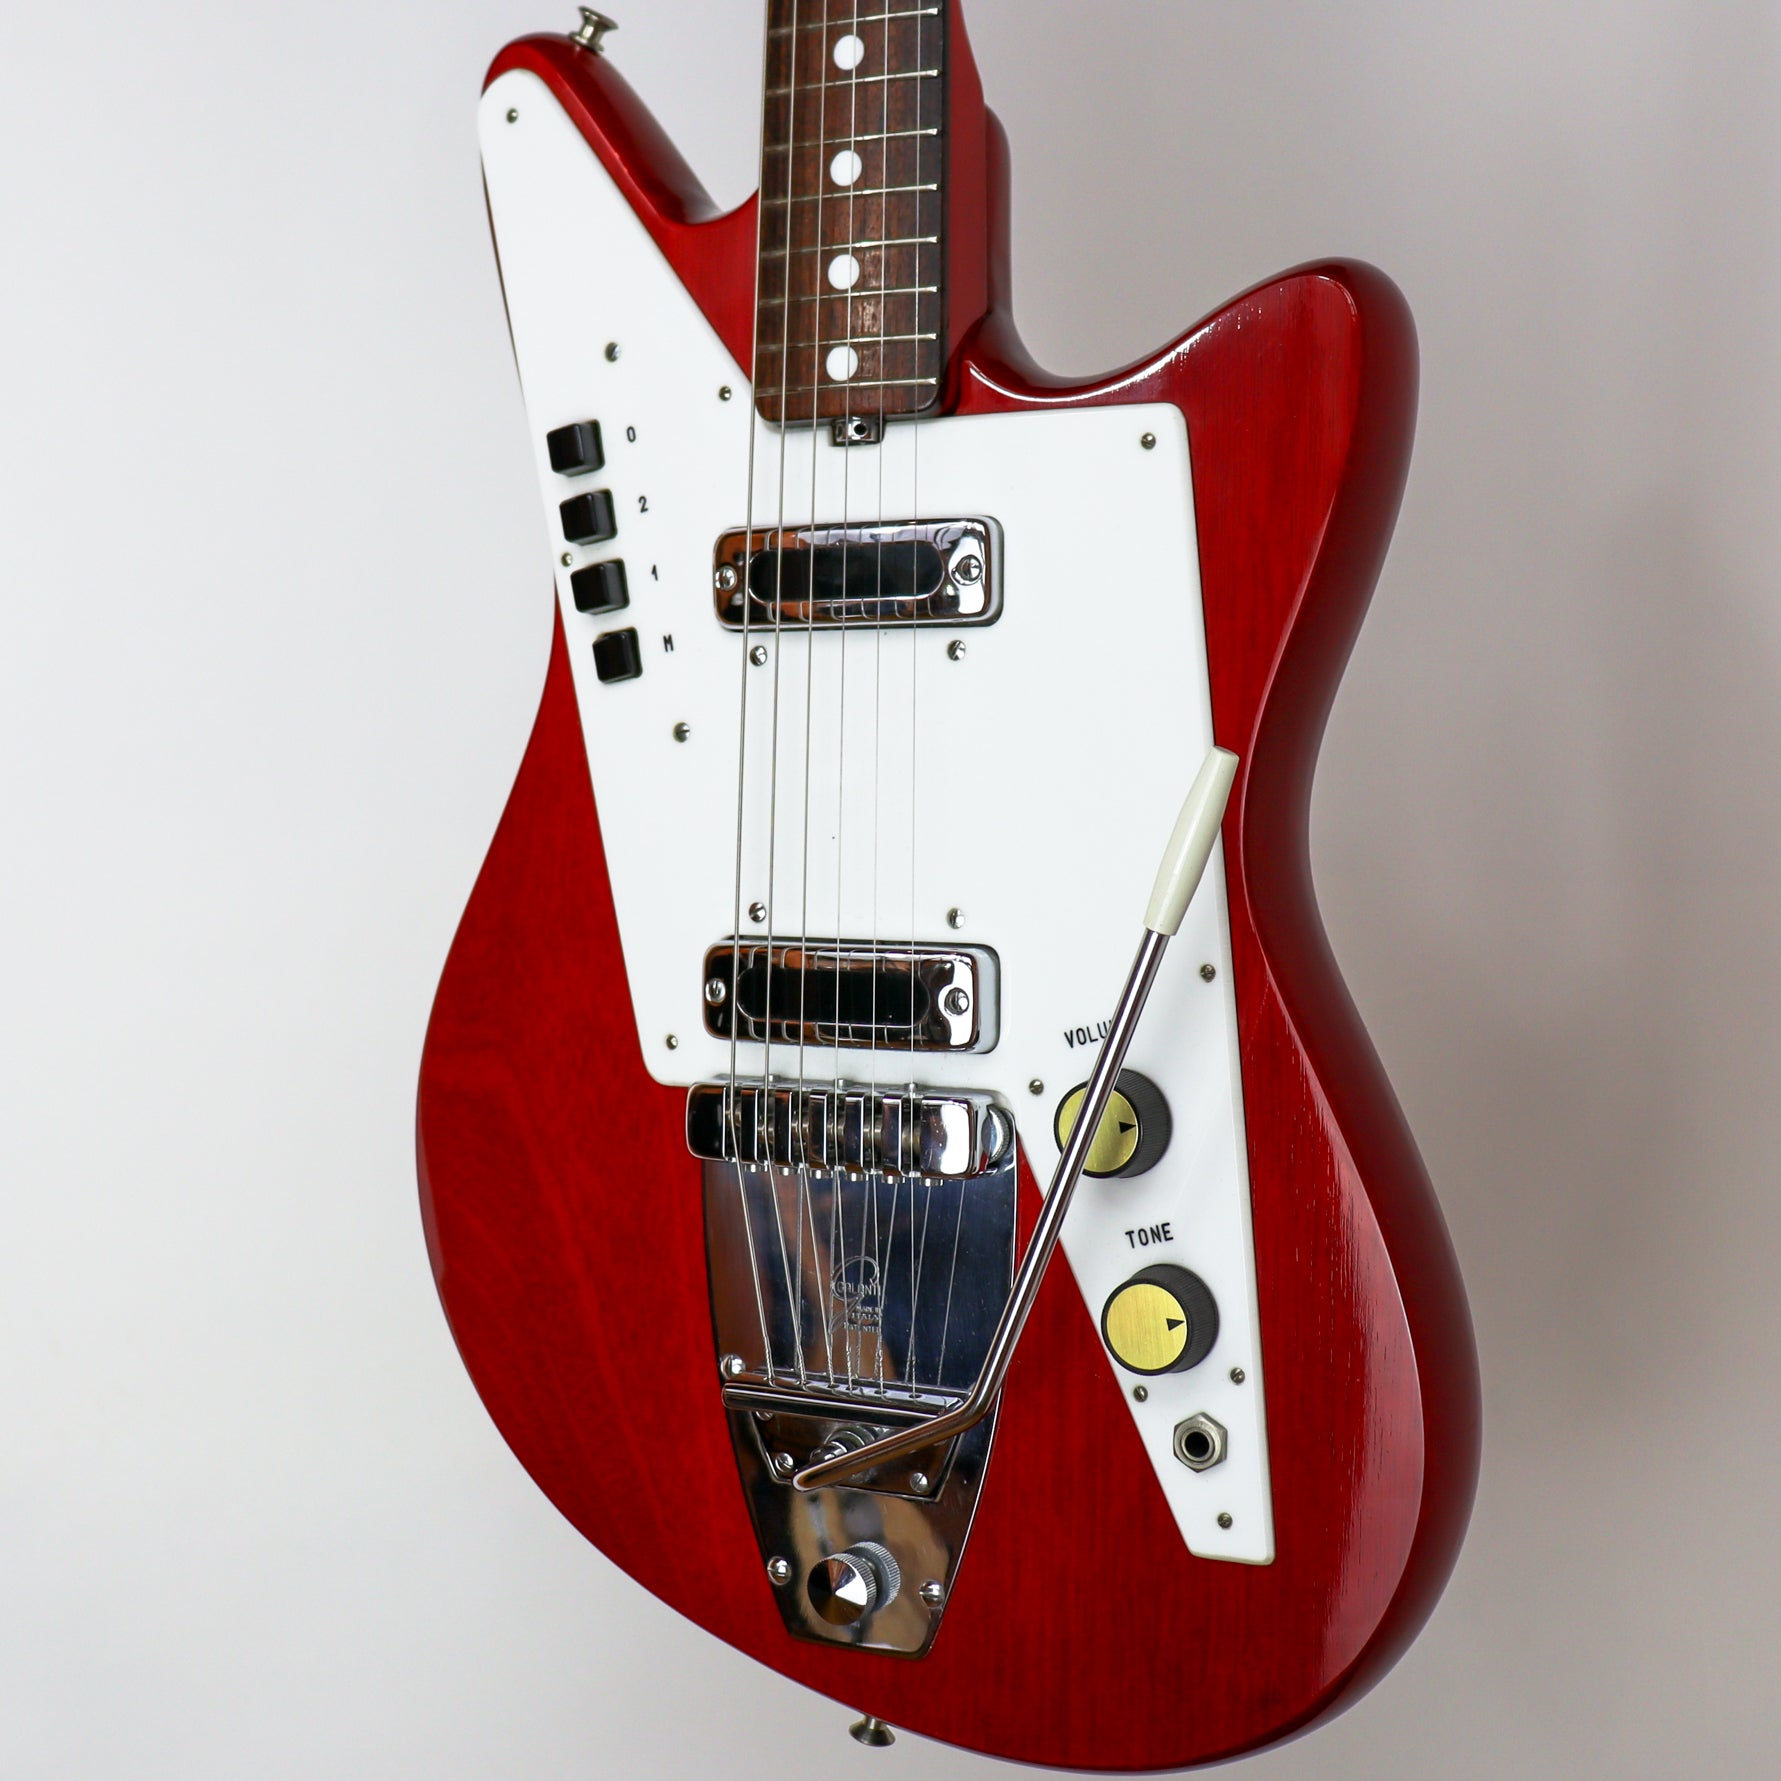 Galanti Late '60s Grand Prix 5291 with Original Hardshell Case